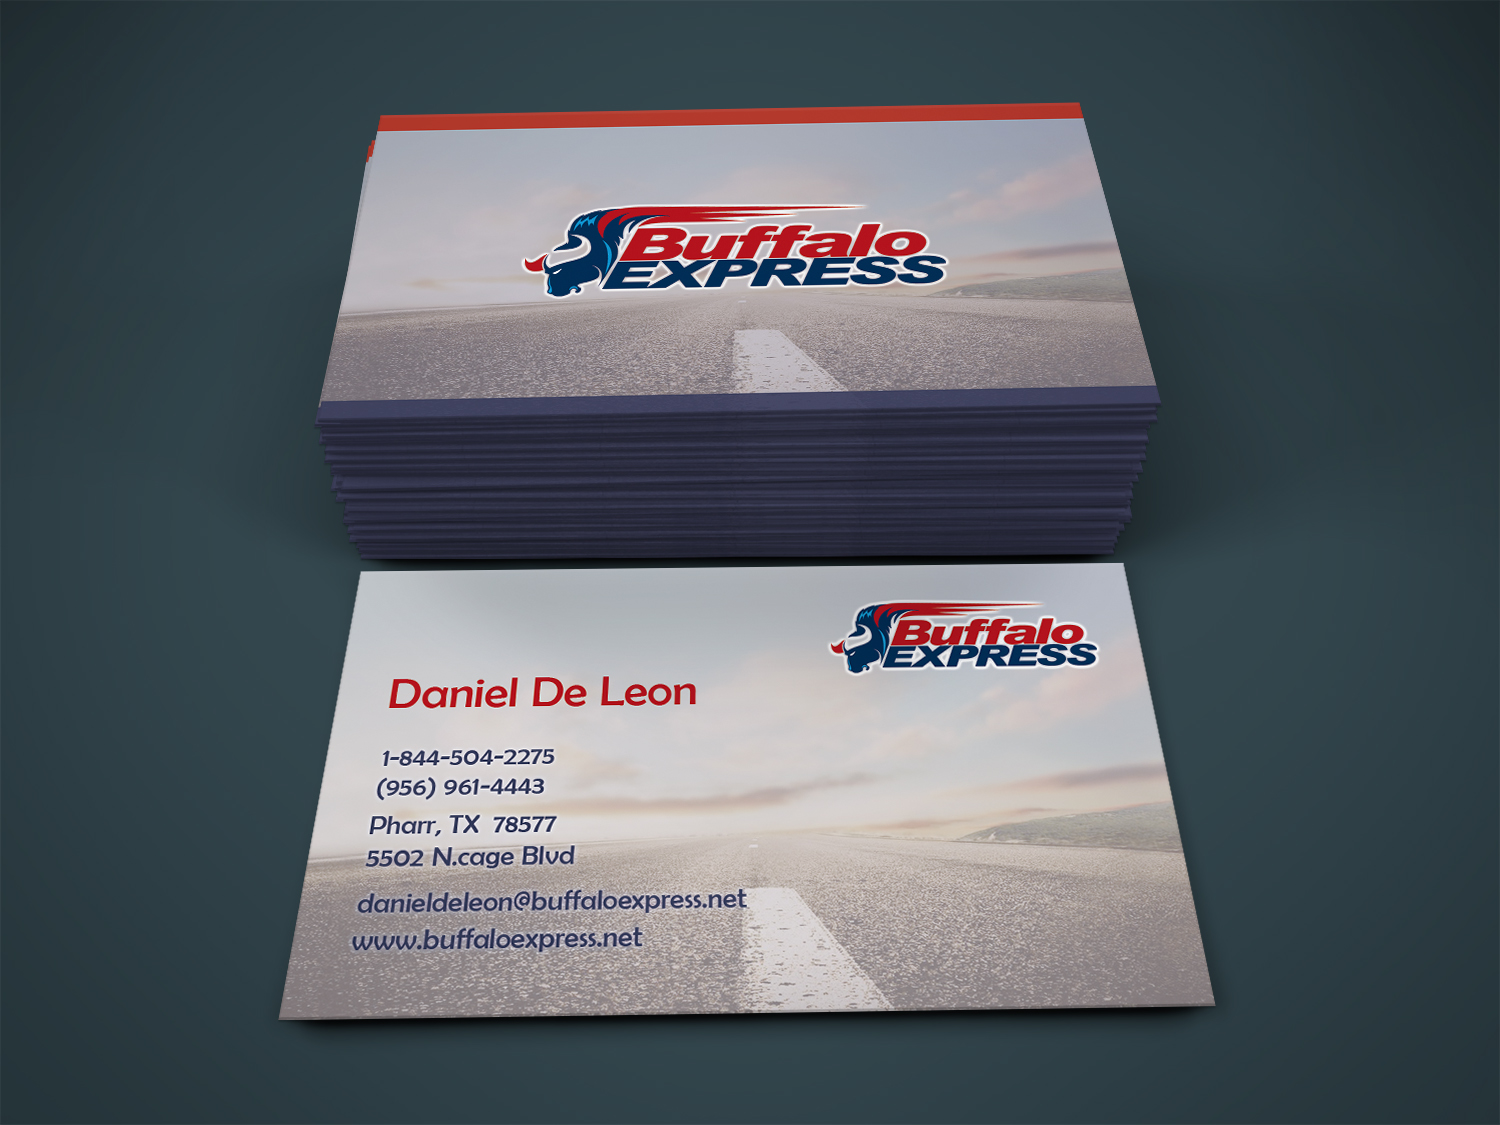 Professional upmarket business business card design for buffalo business card design by 4m design for buffalo express design 12021778 reheart Images